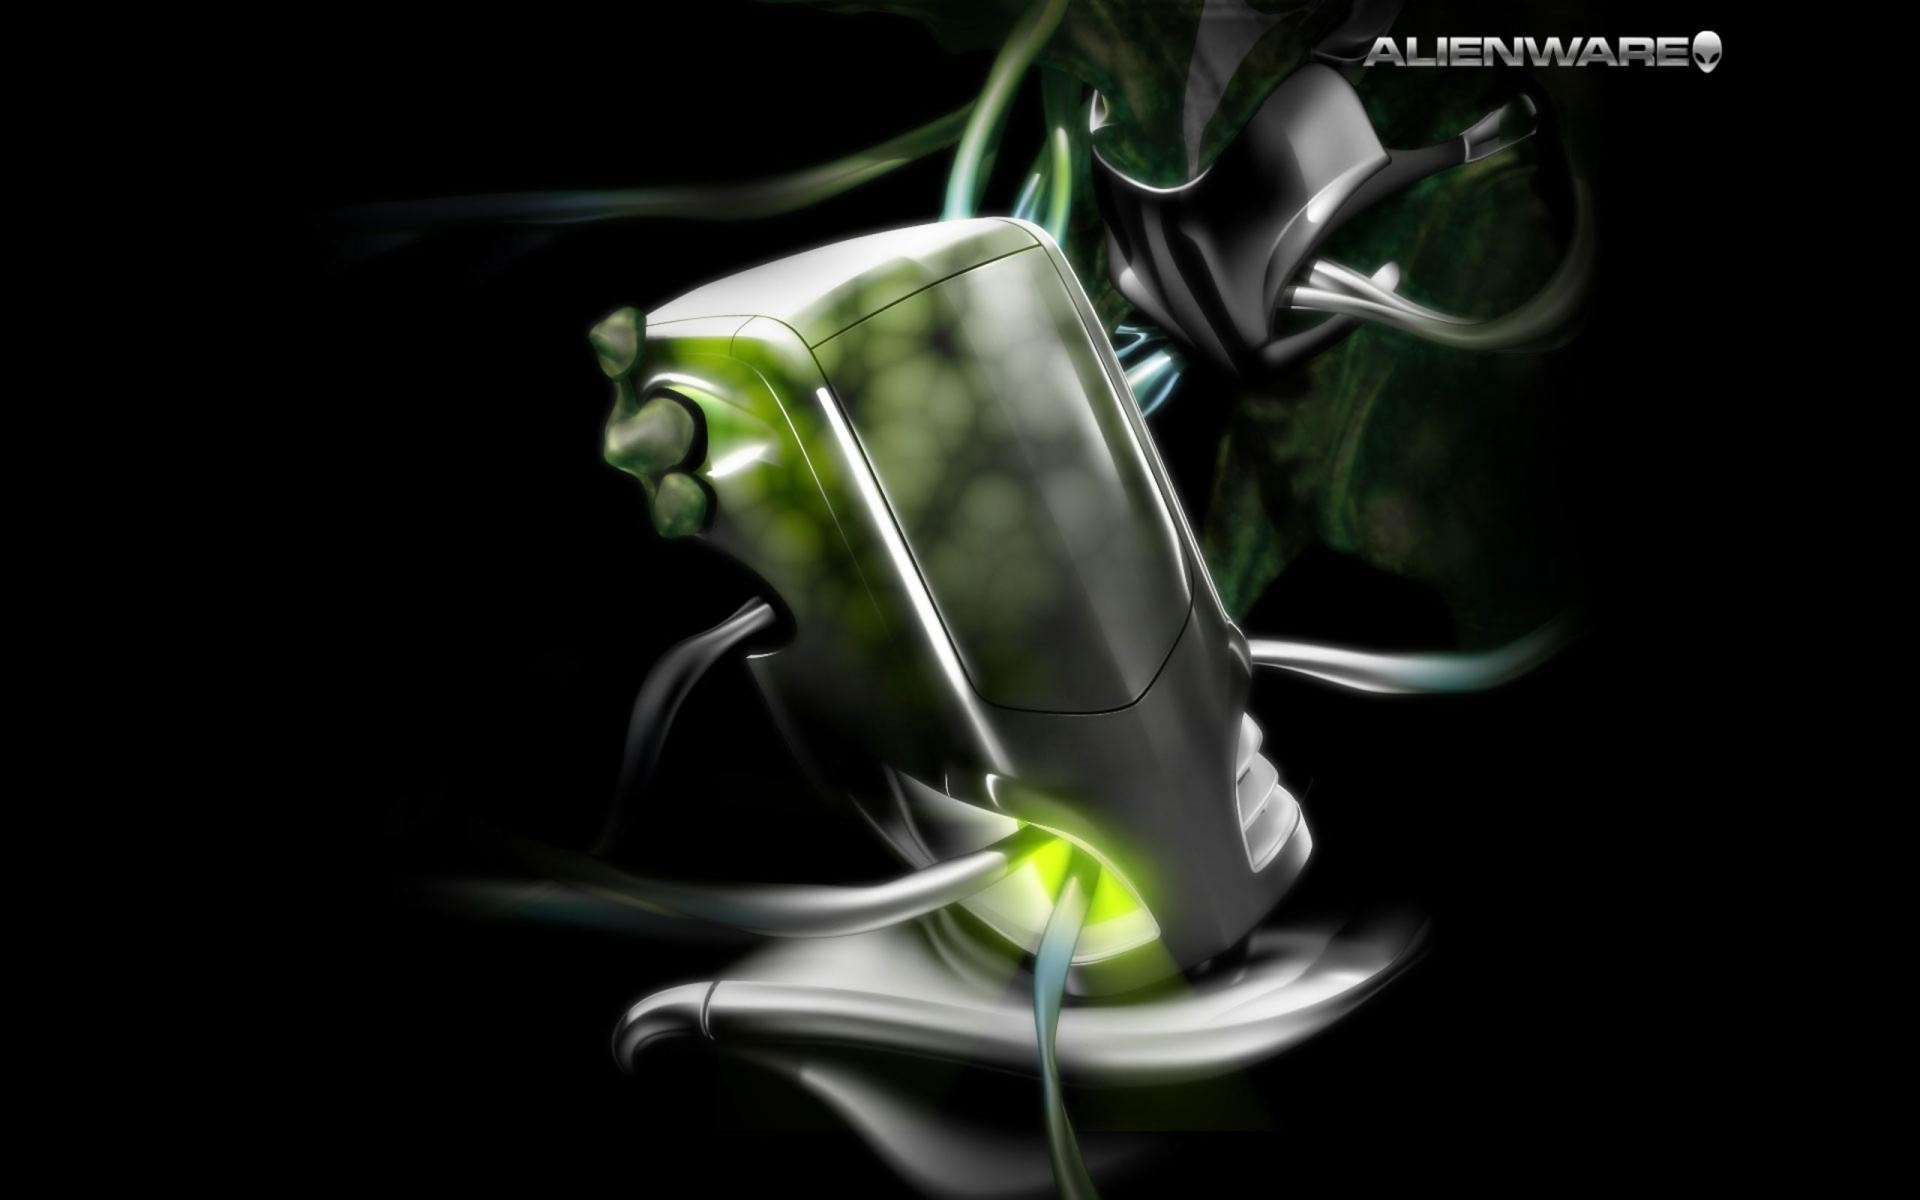 3d alienware wallpaper